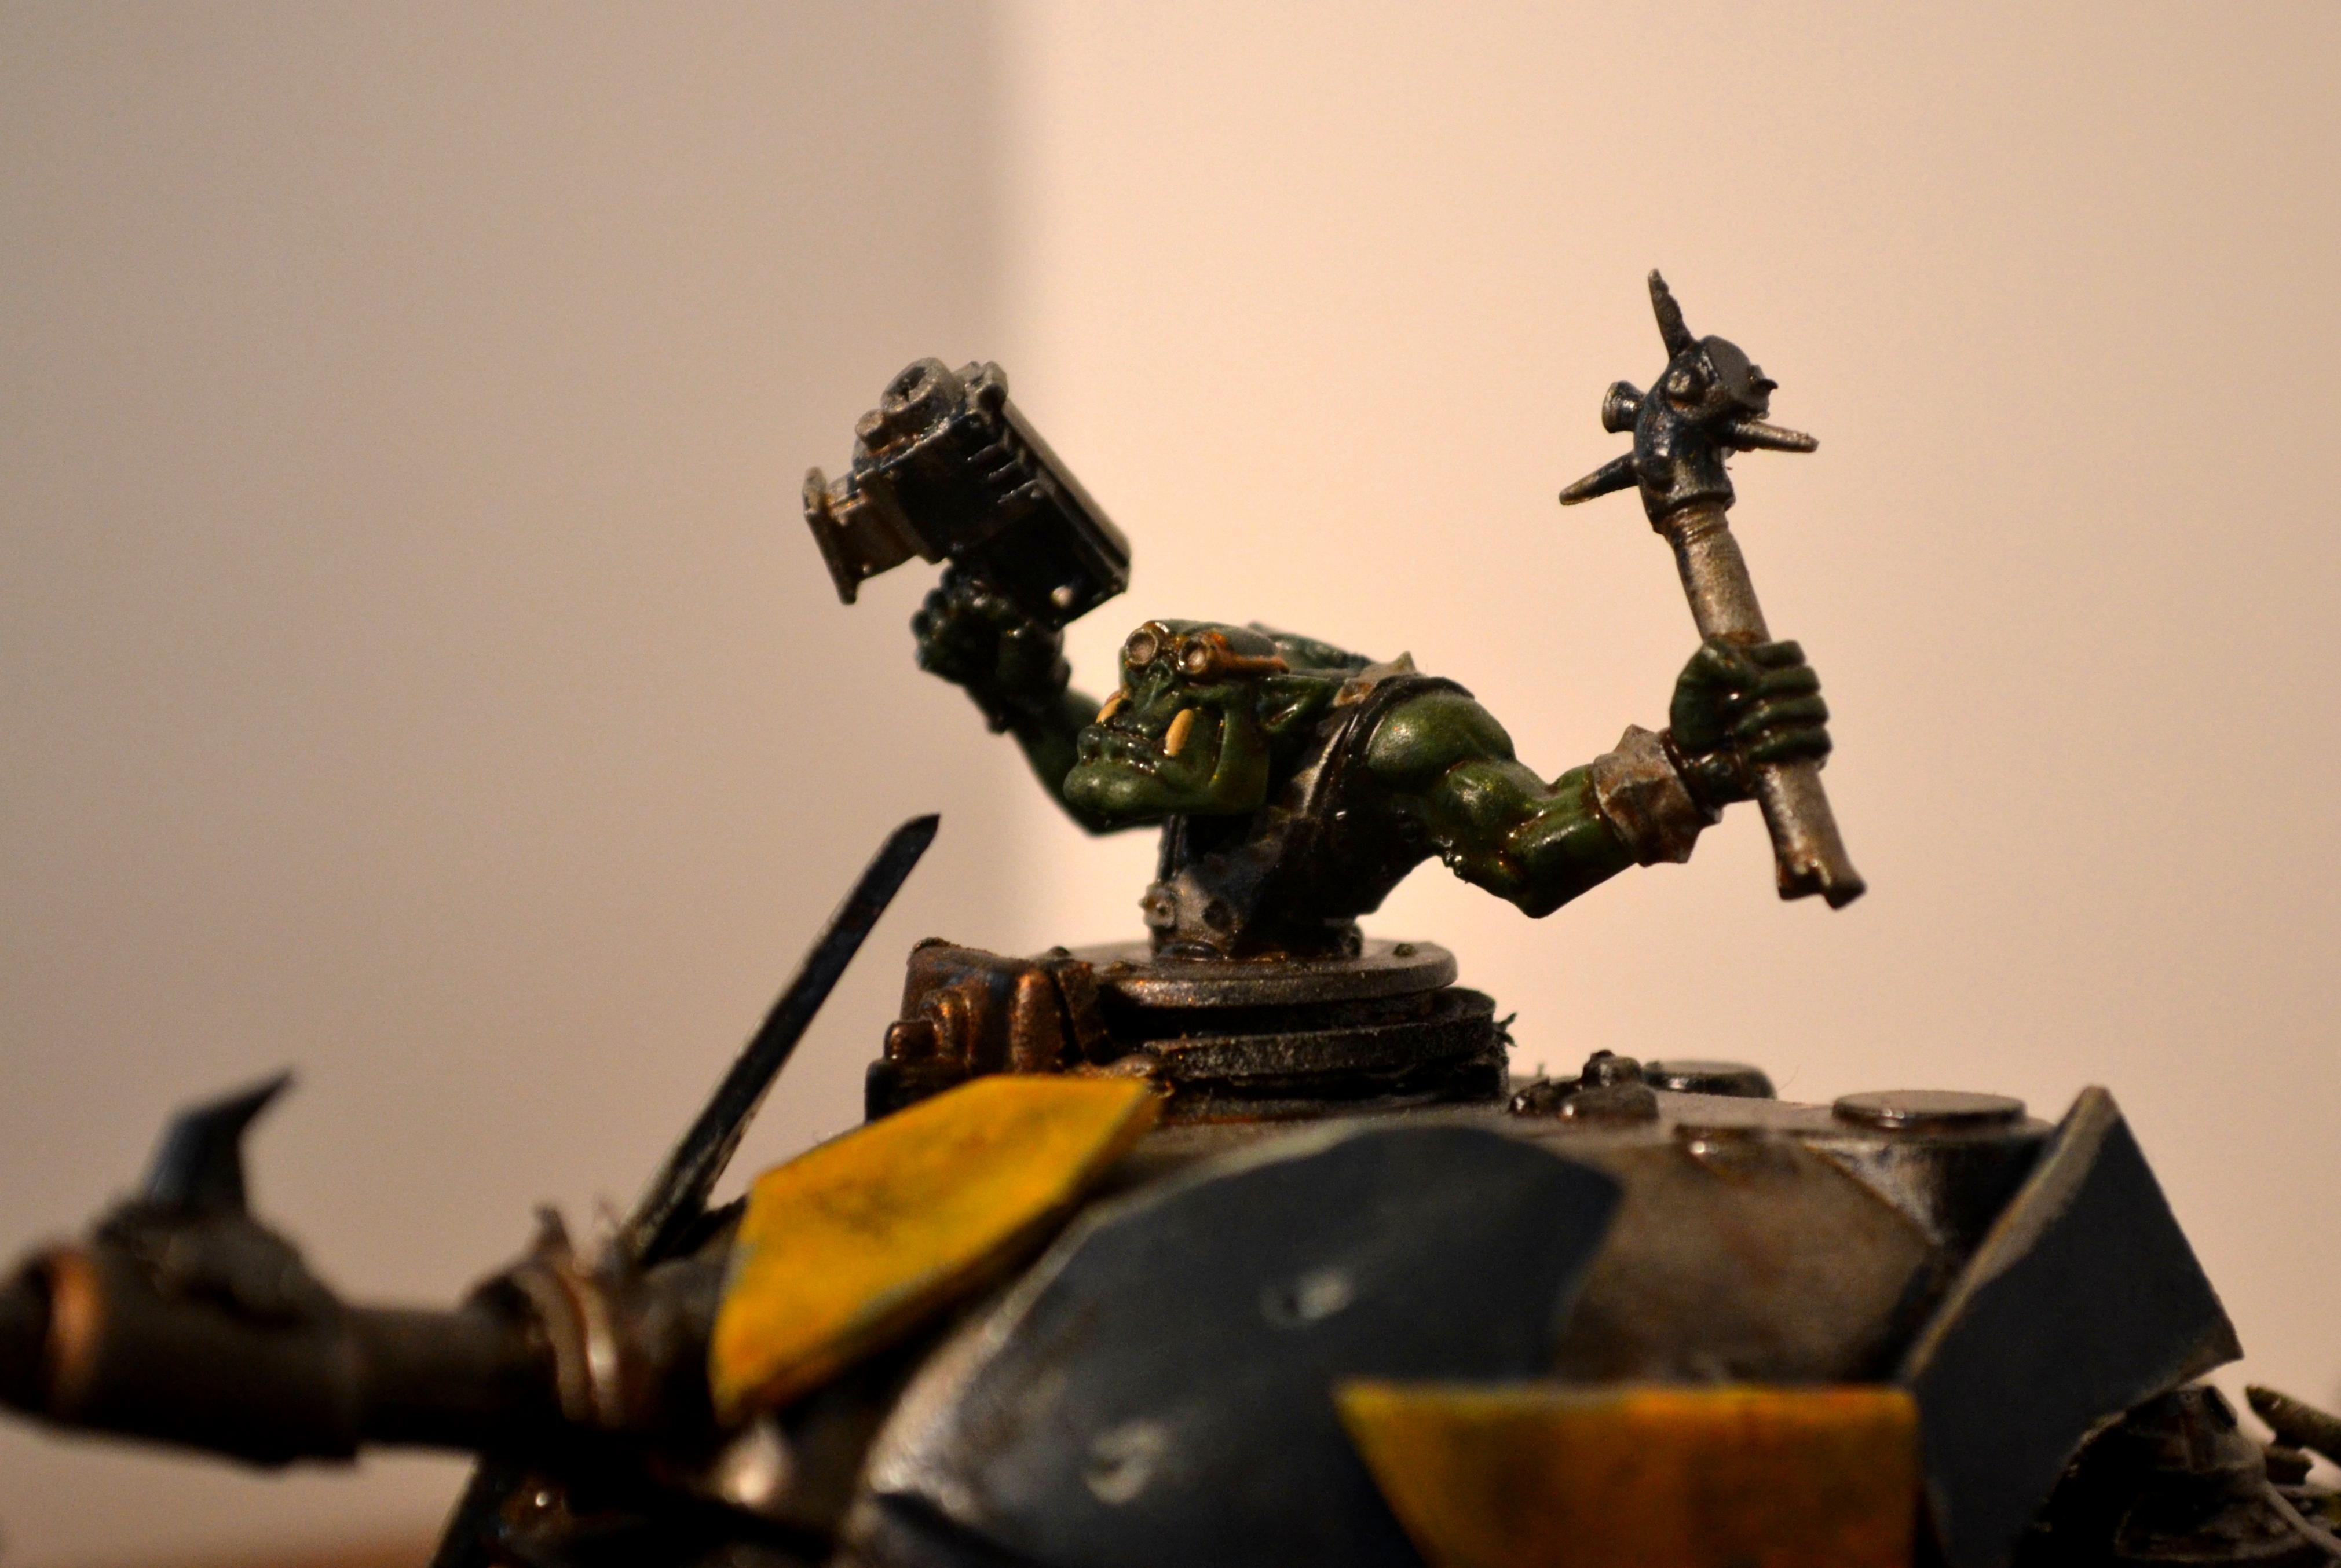 Conversion, Looted Wagon, Orks, Warhammer 40,000